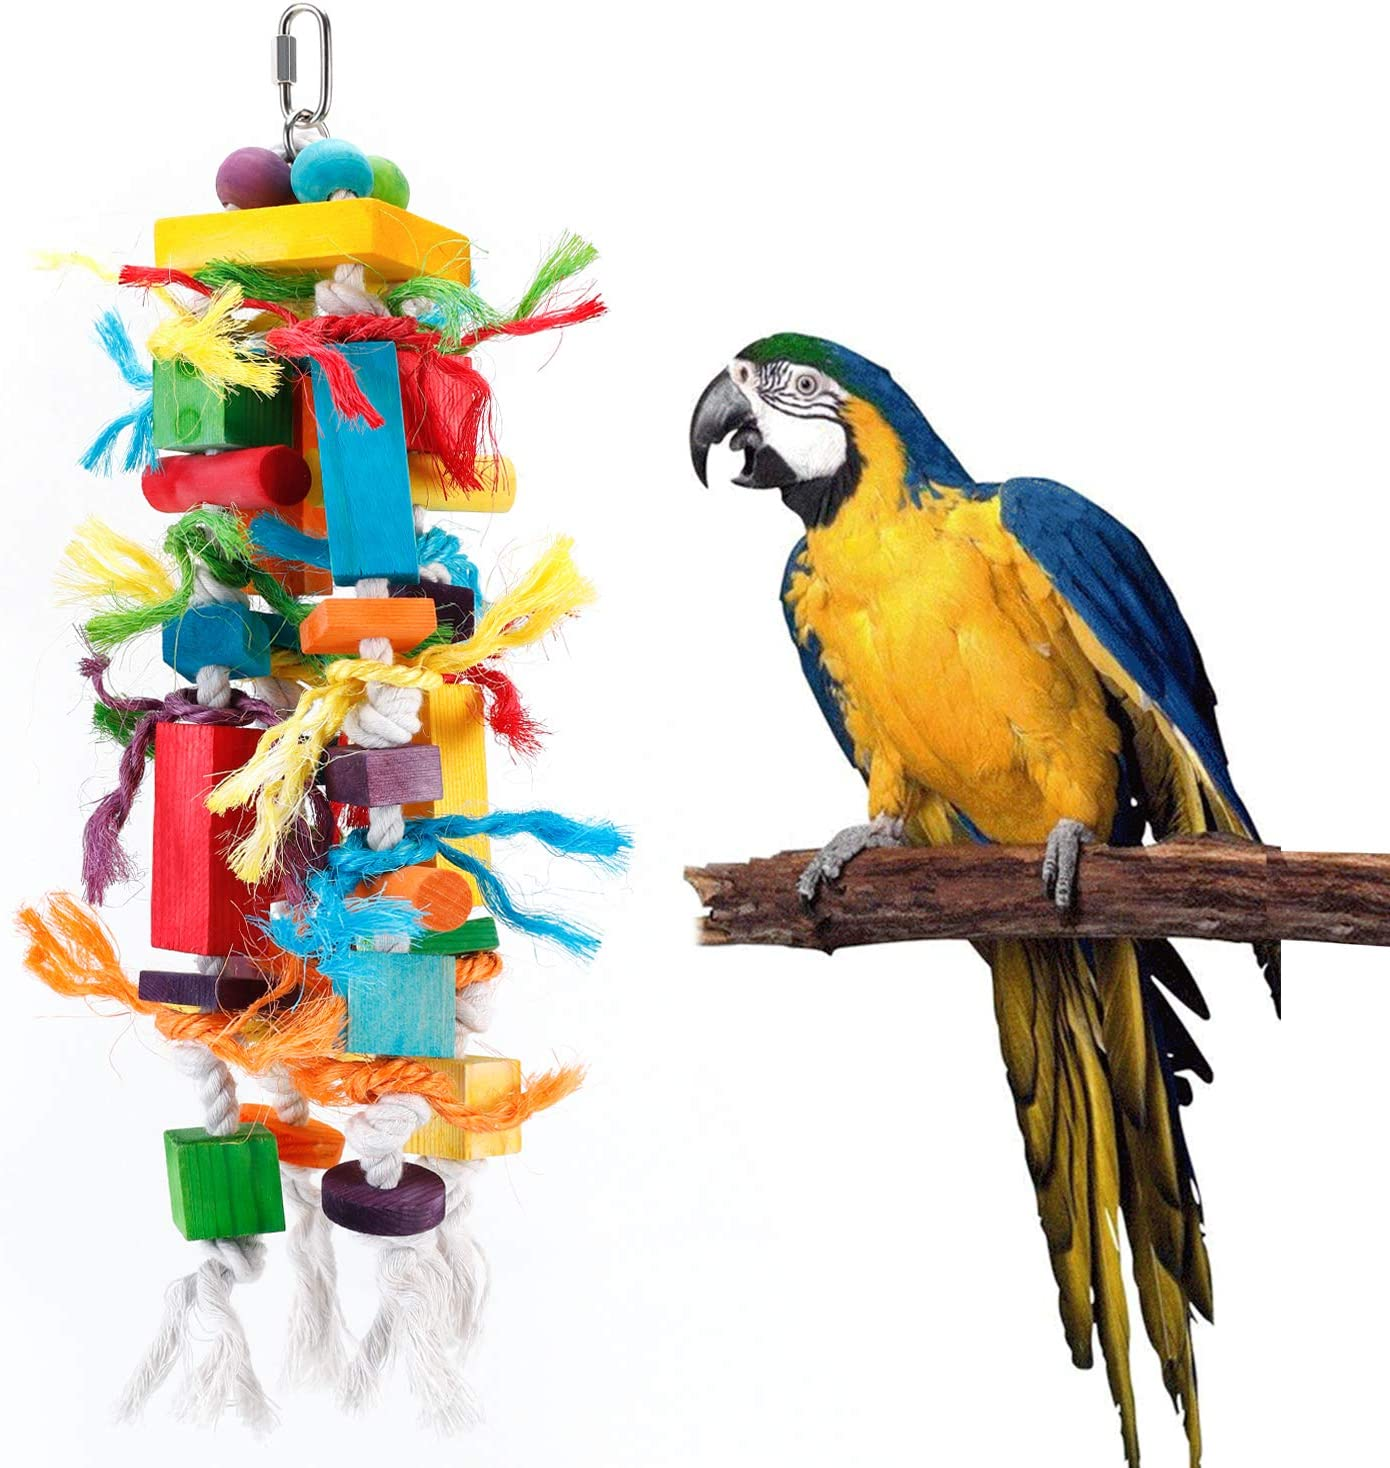 Bvanki Parrot Toy, Colurful Rainbow Bridge, Chewing,Hanging Toy, Parrot Nest Suitable for A Wide Variety of Large and Small Parrots and Birds.